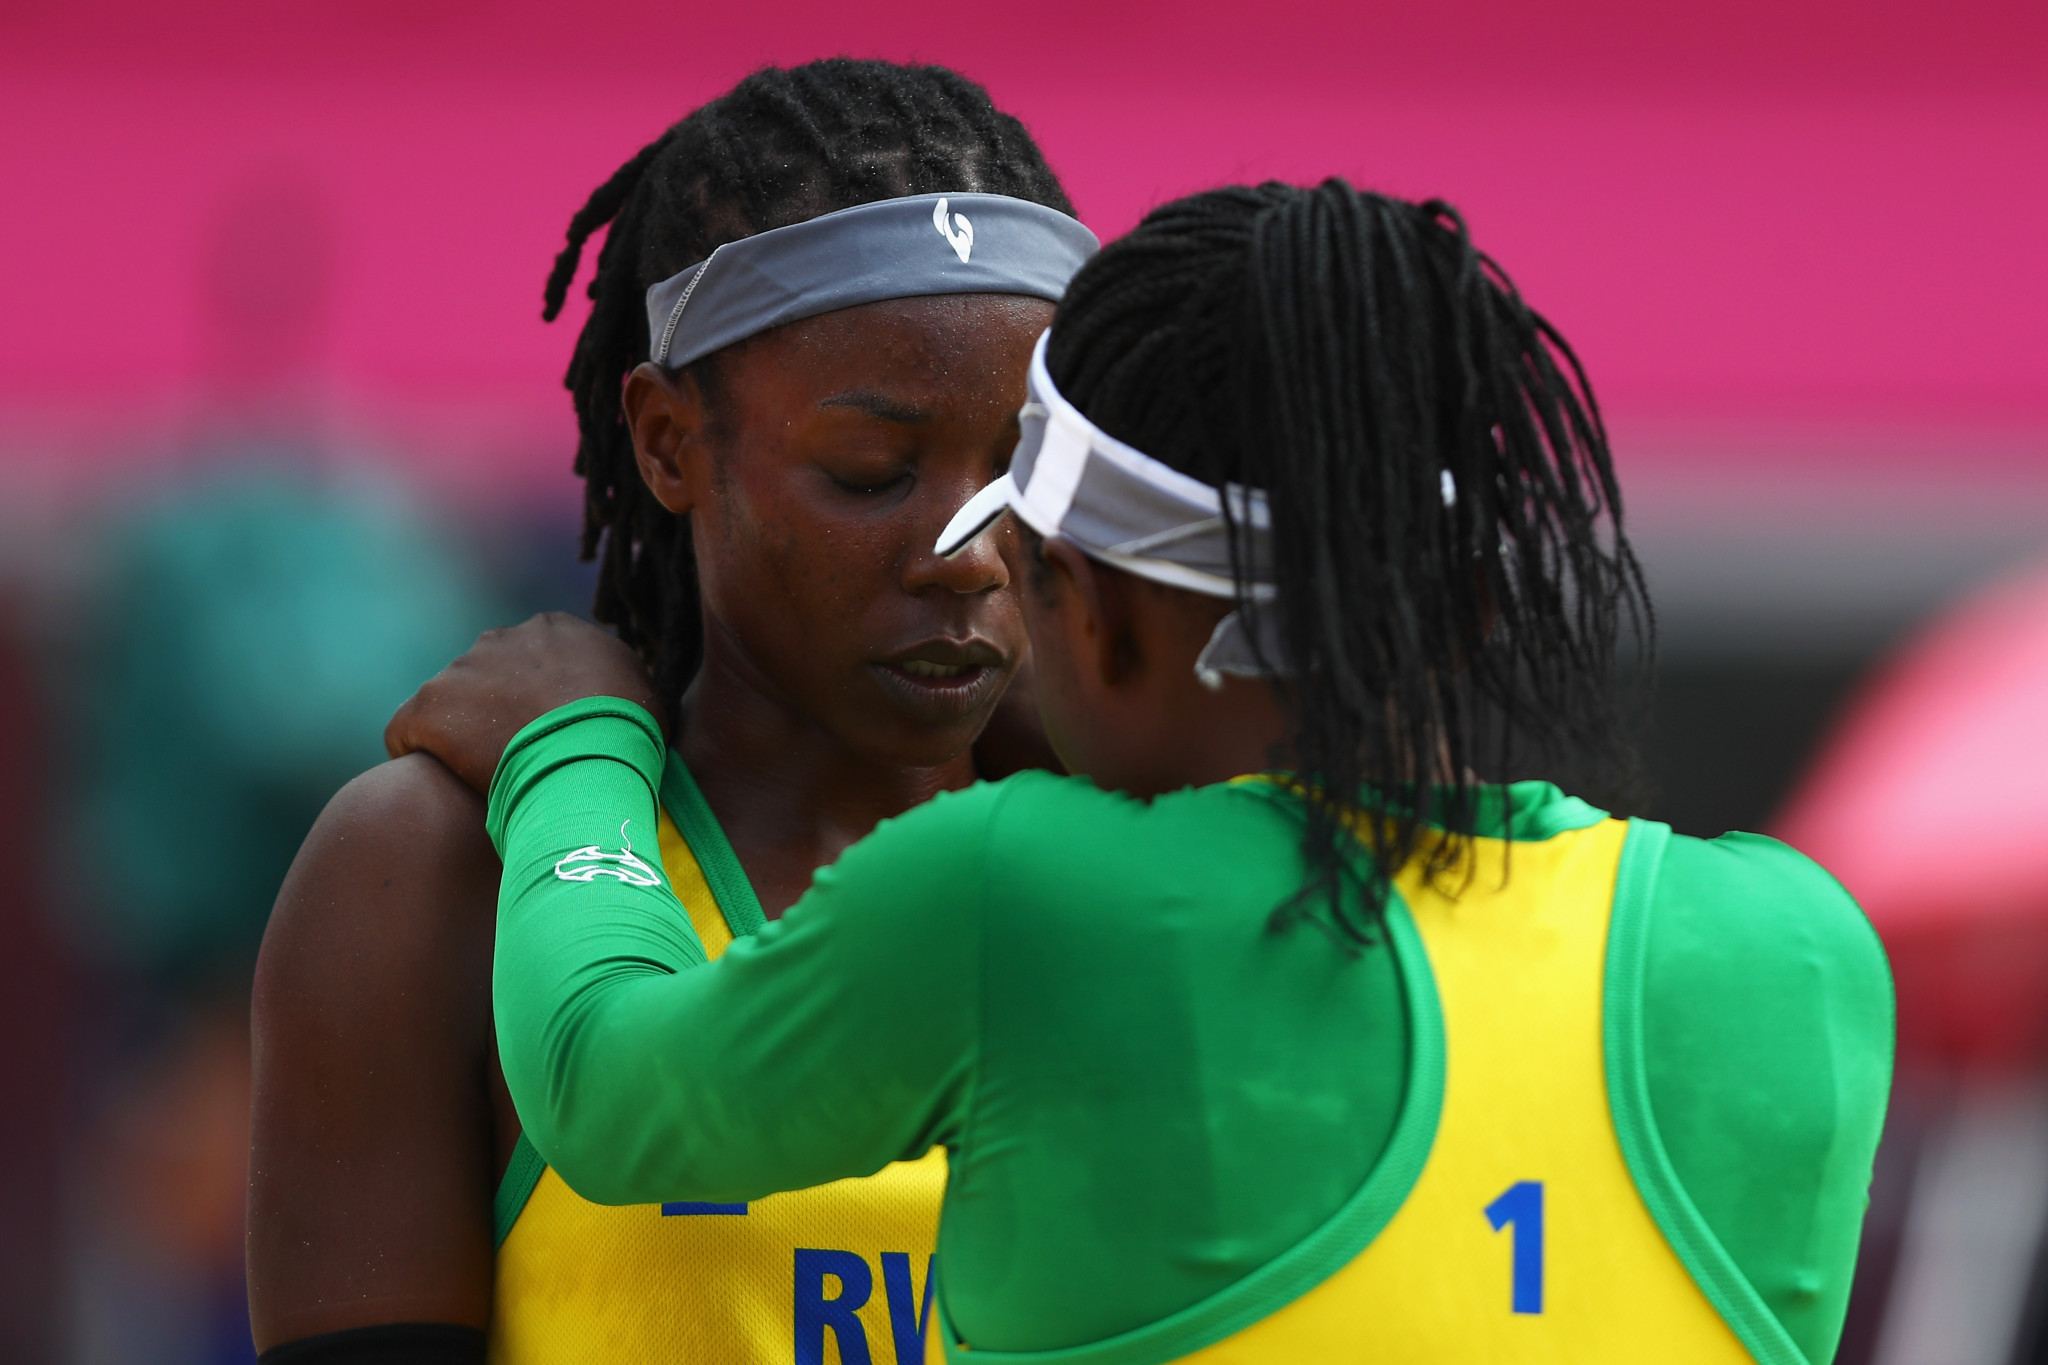 Anniversary of Rwandan genocide marked on day three of Gold Coast 2018 Commonwealth Games